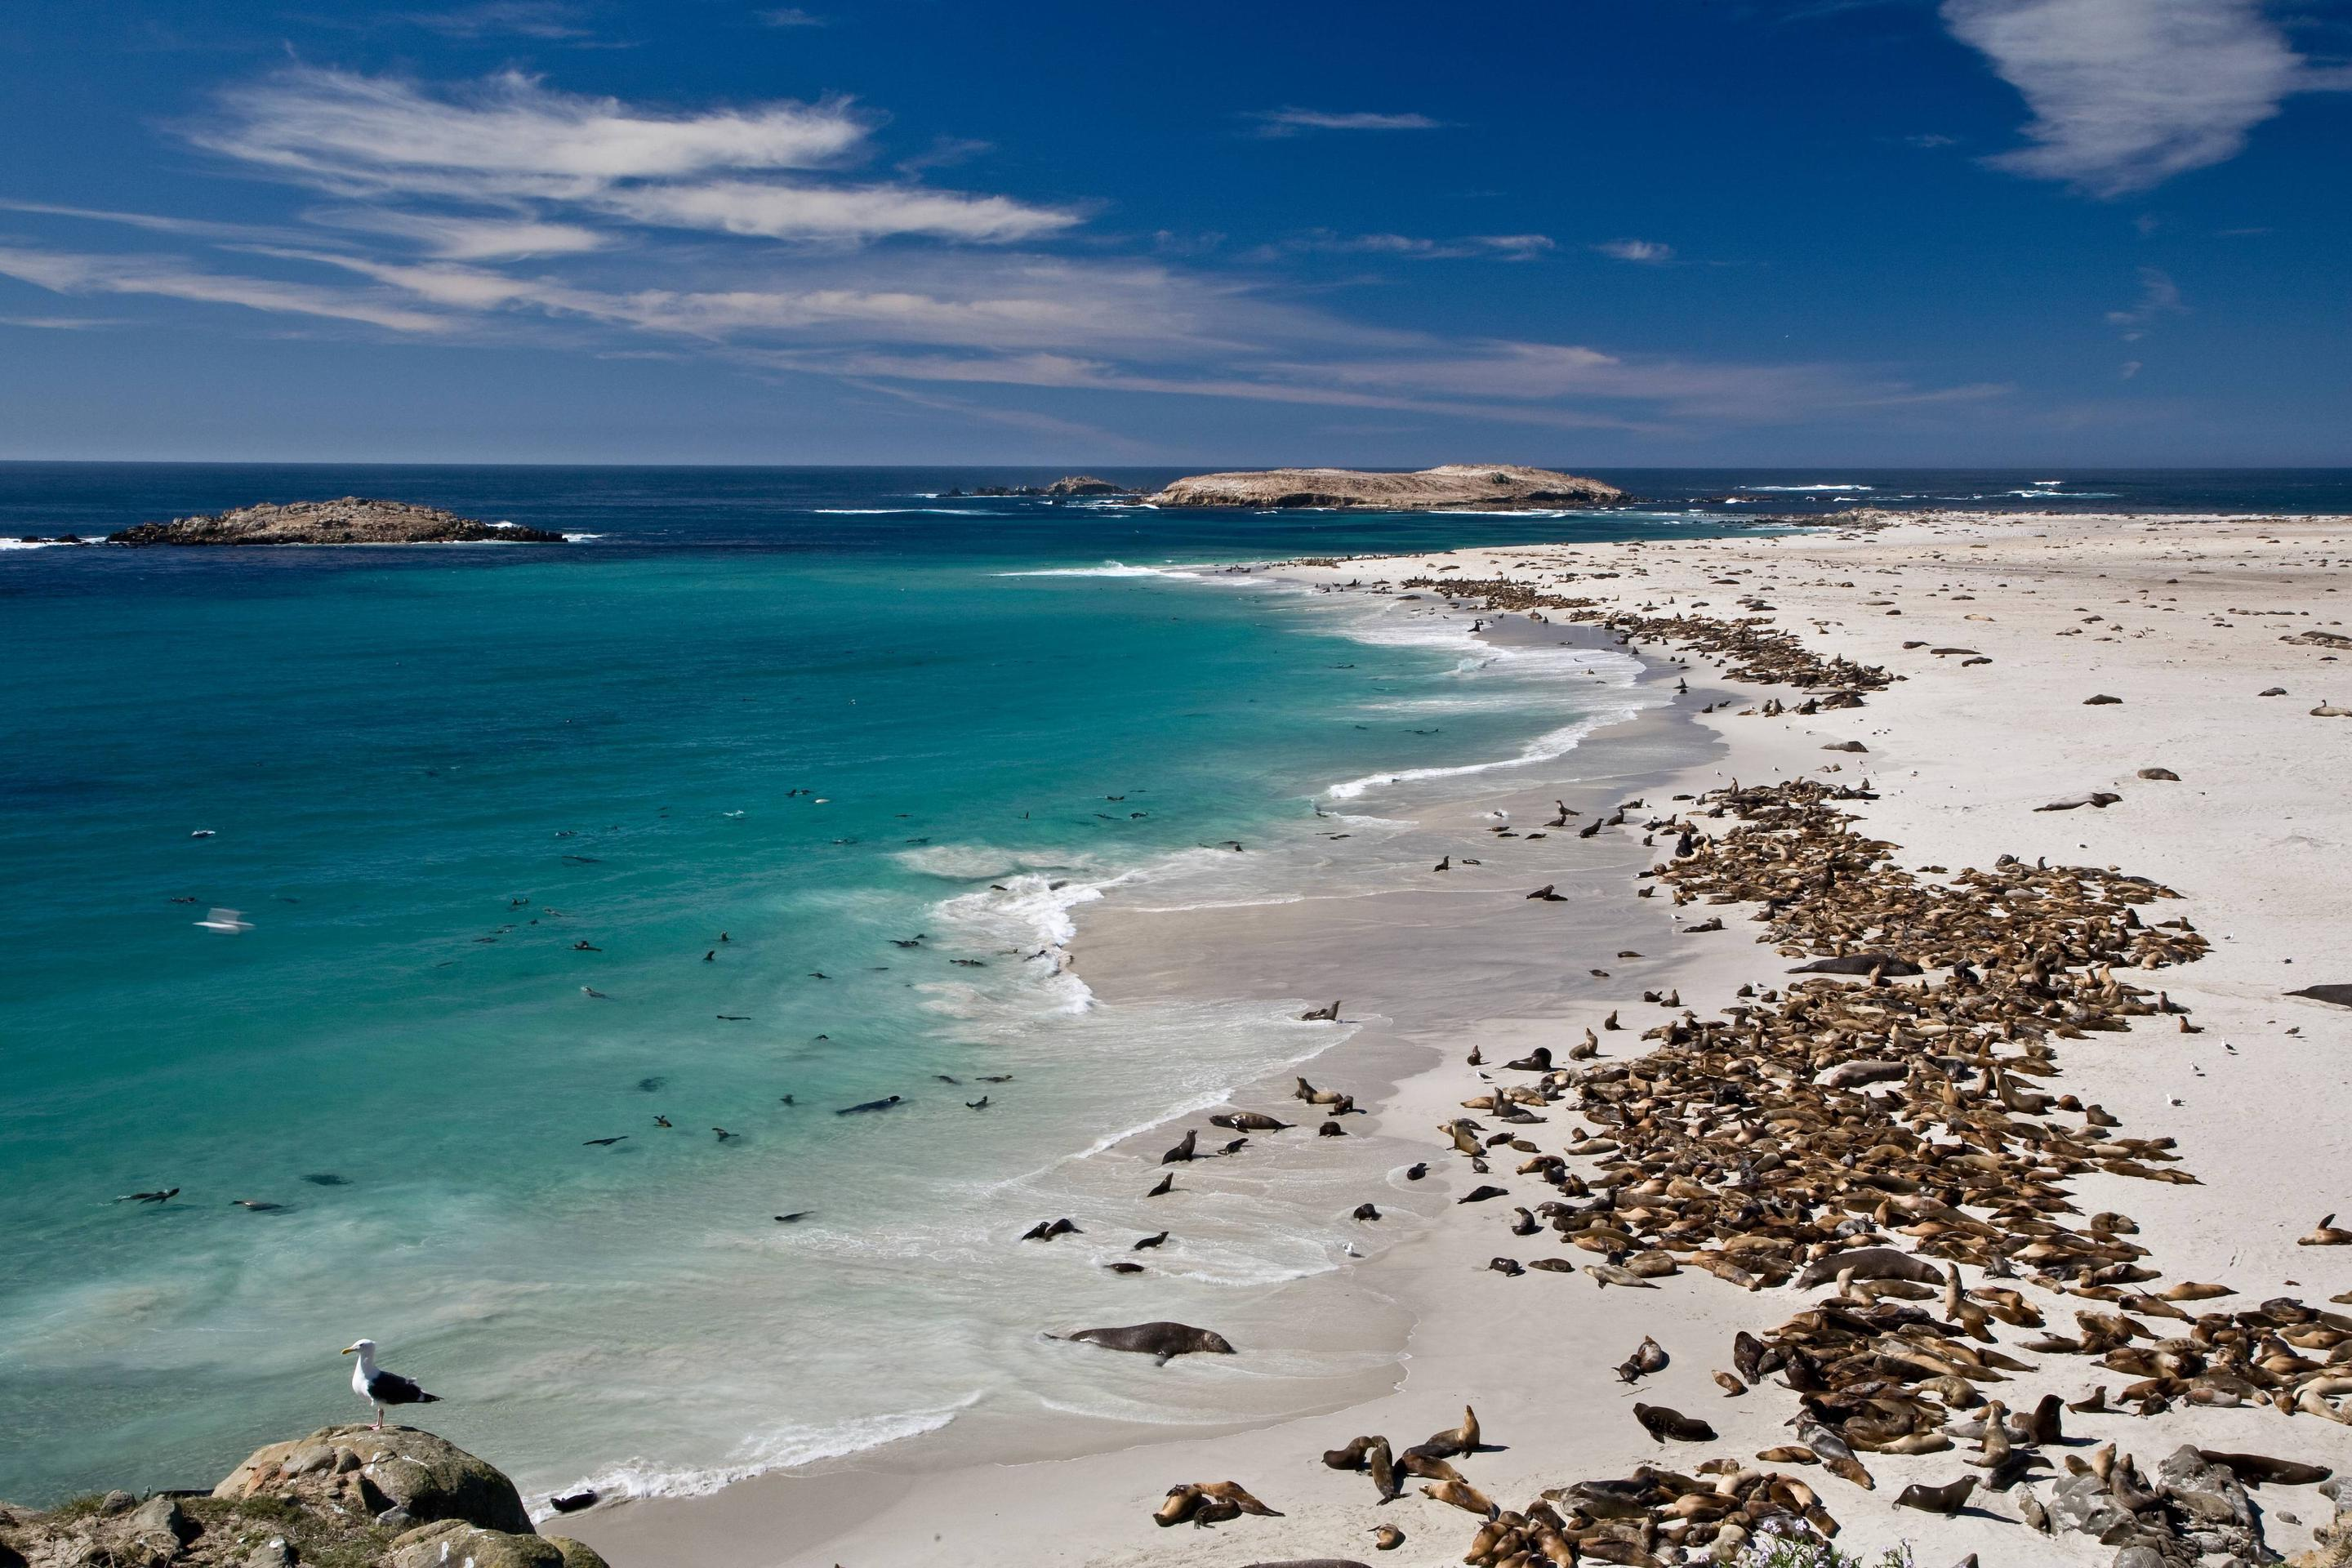 Point Bennet by Tim HaufPoint Bennet, San Miguel Island: One of the greatest concentrations of wildlife in the world occurs on San Miguel with over 100,000 pinnipeds gathering to breed, pup, and rest.